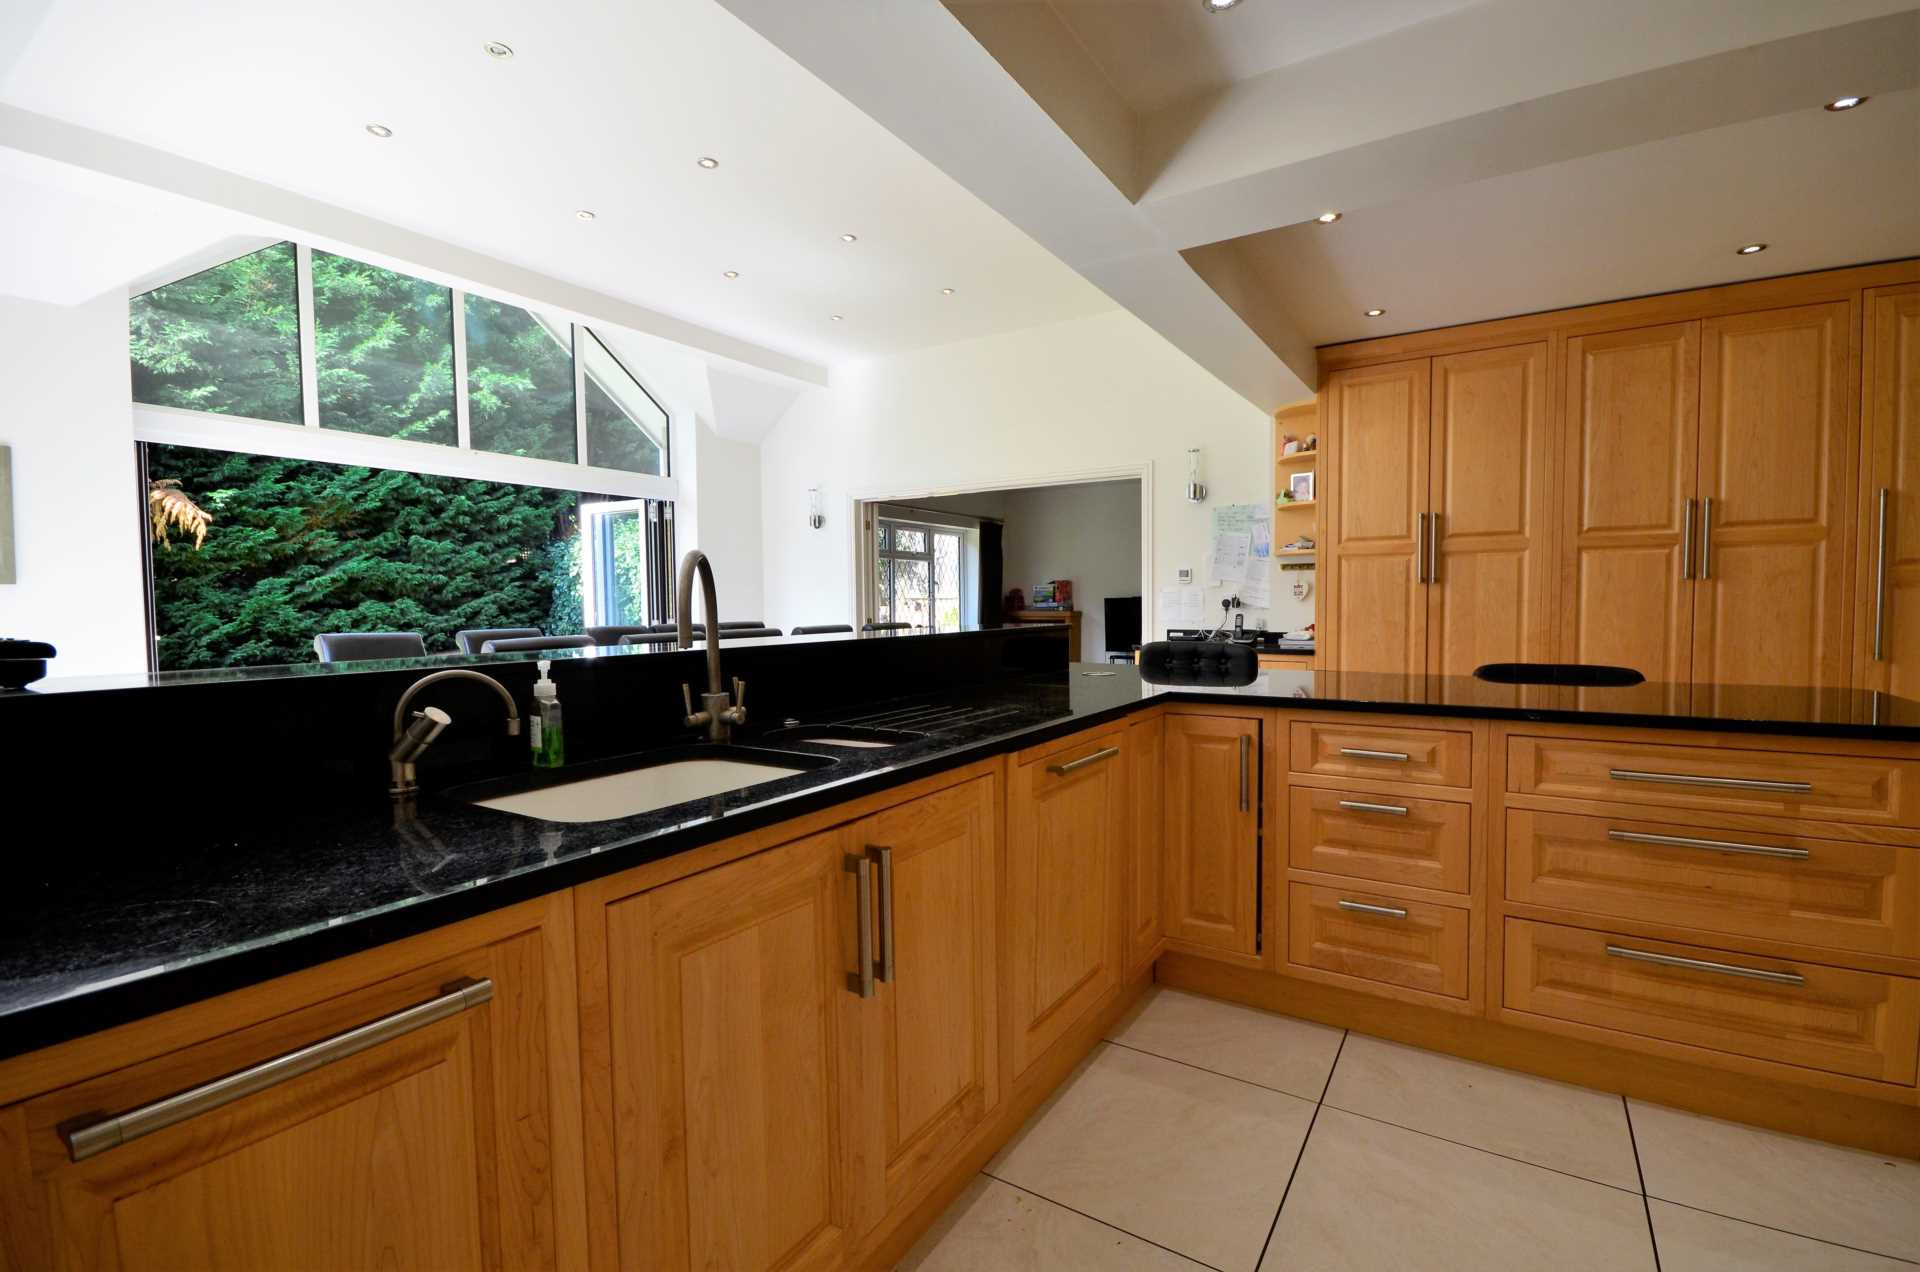 Norsey Close, Billericay, Image 6